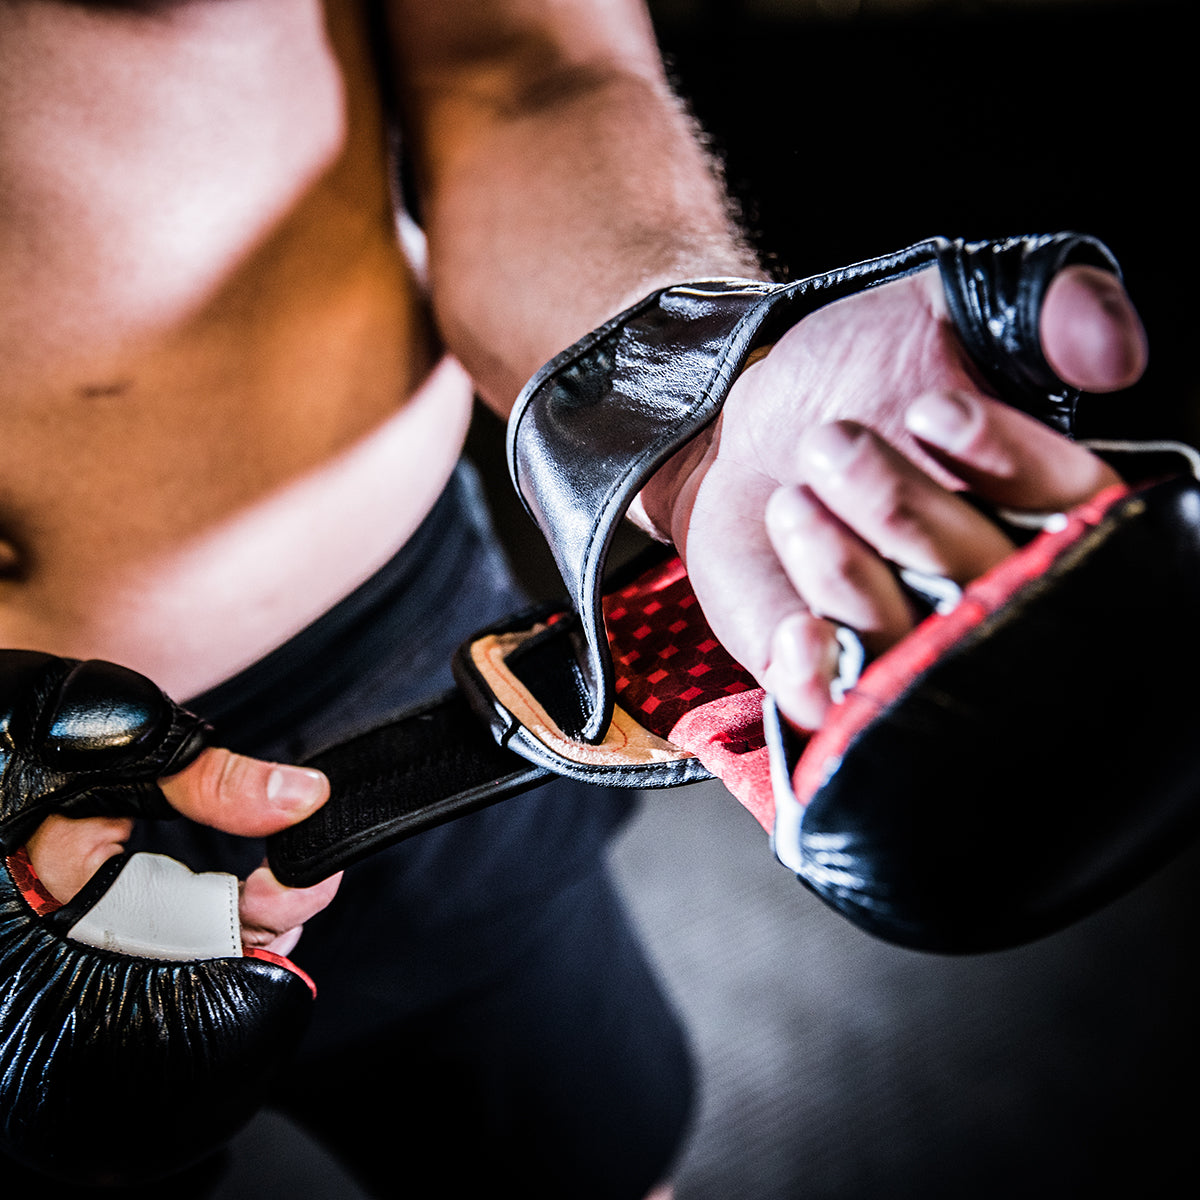 UFC Pro MMA Sparring Gloves being put on by athlete